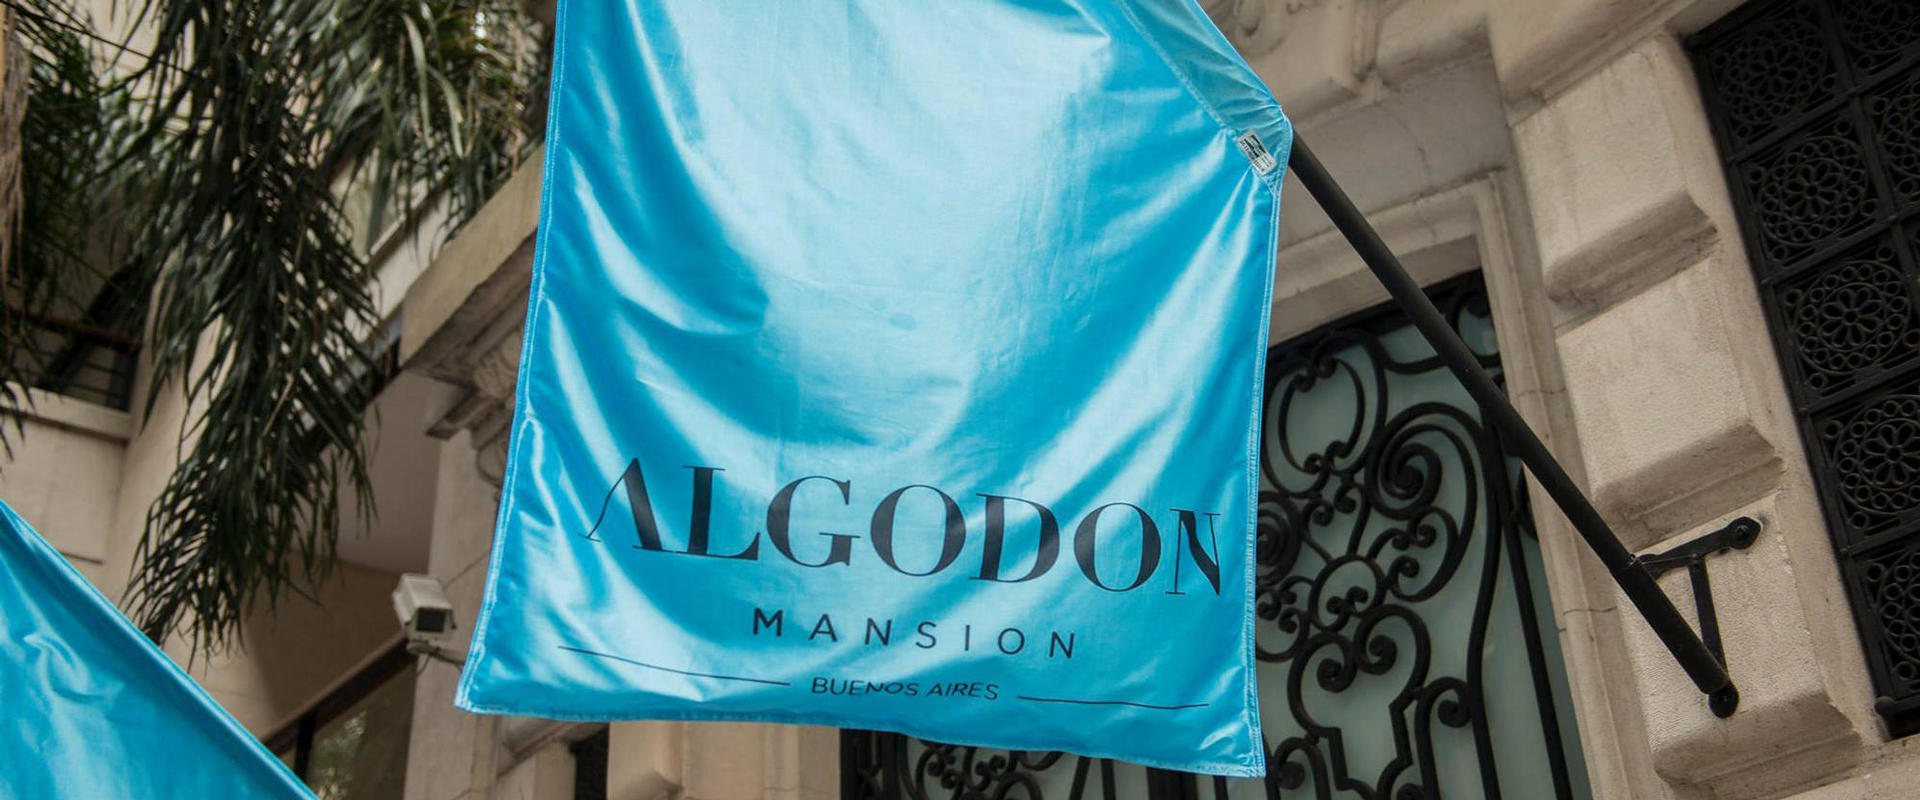 Algodon Mansion Flag